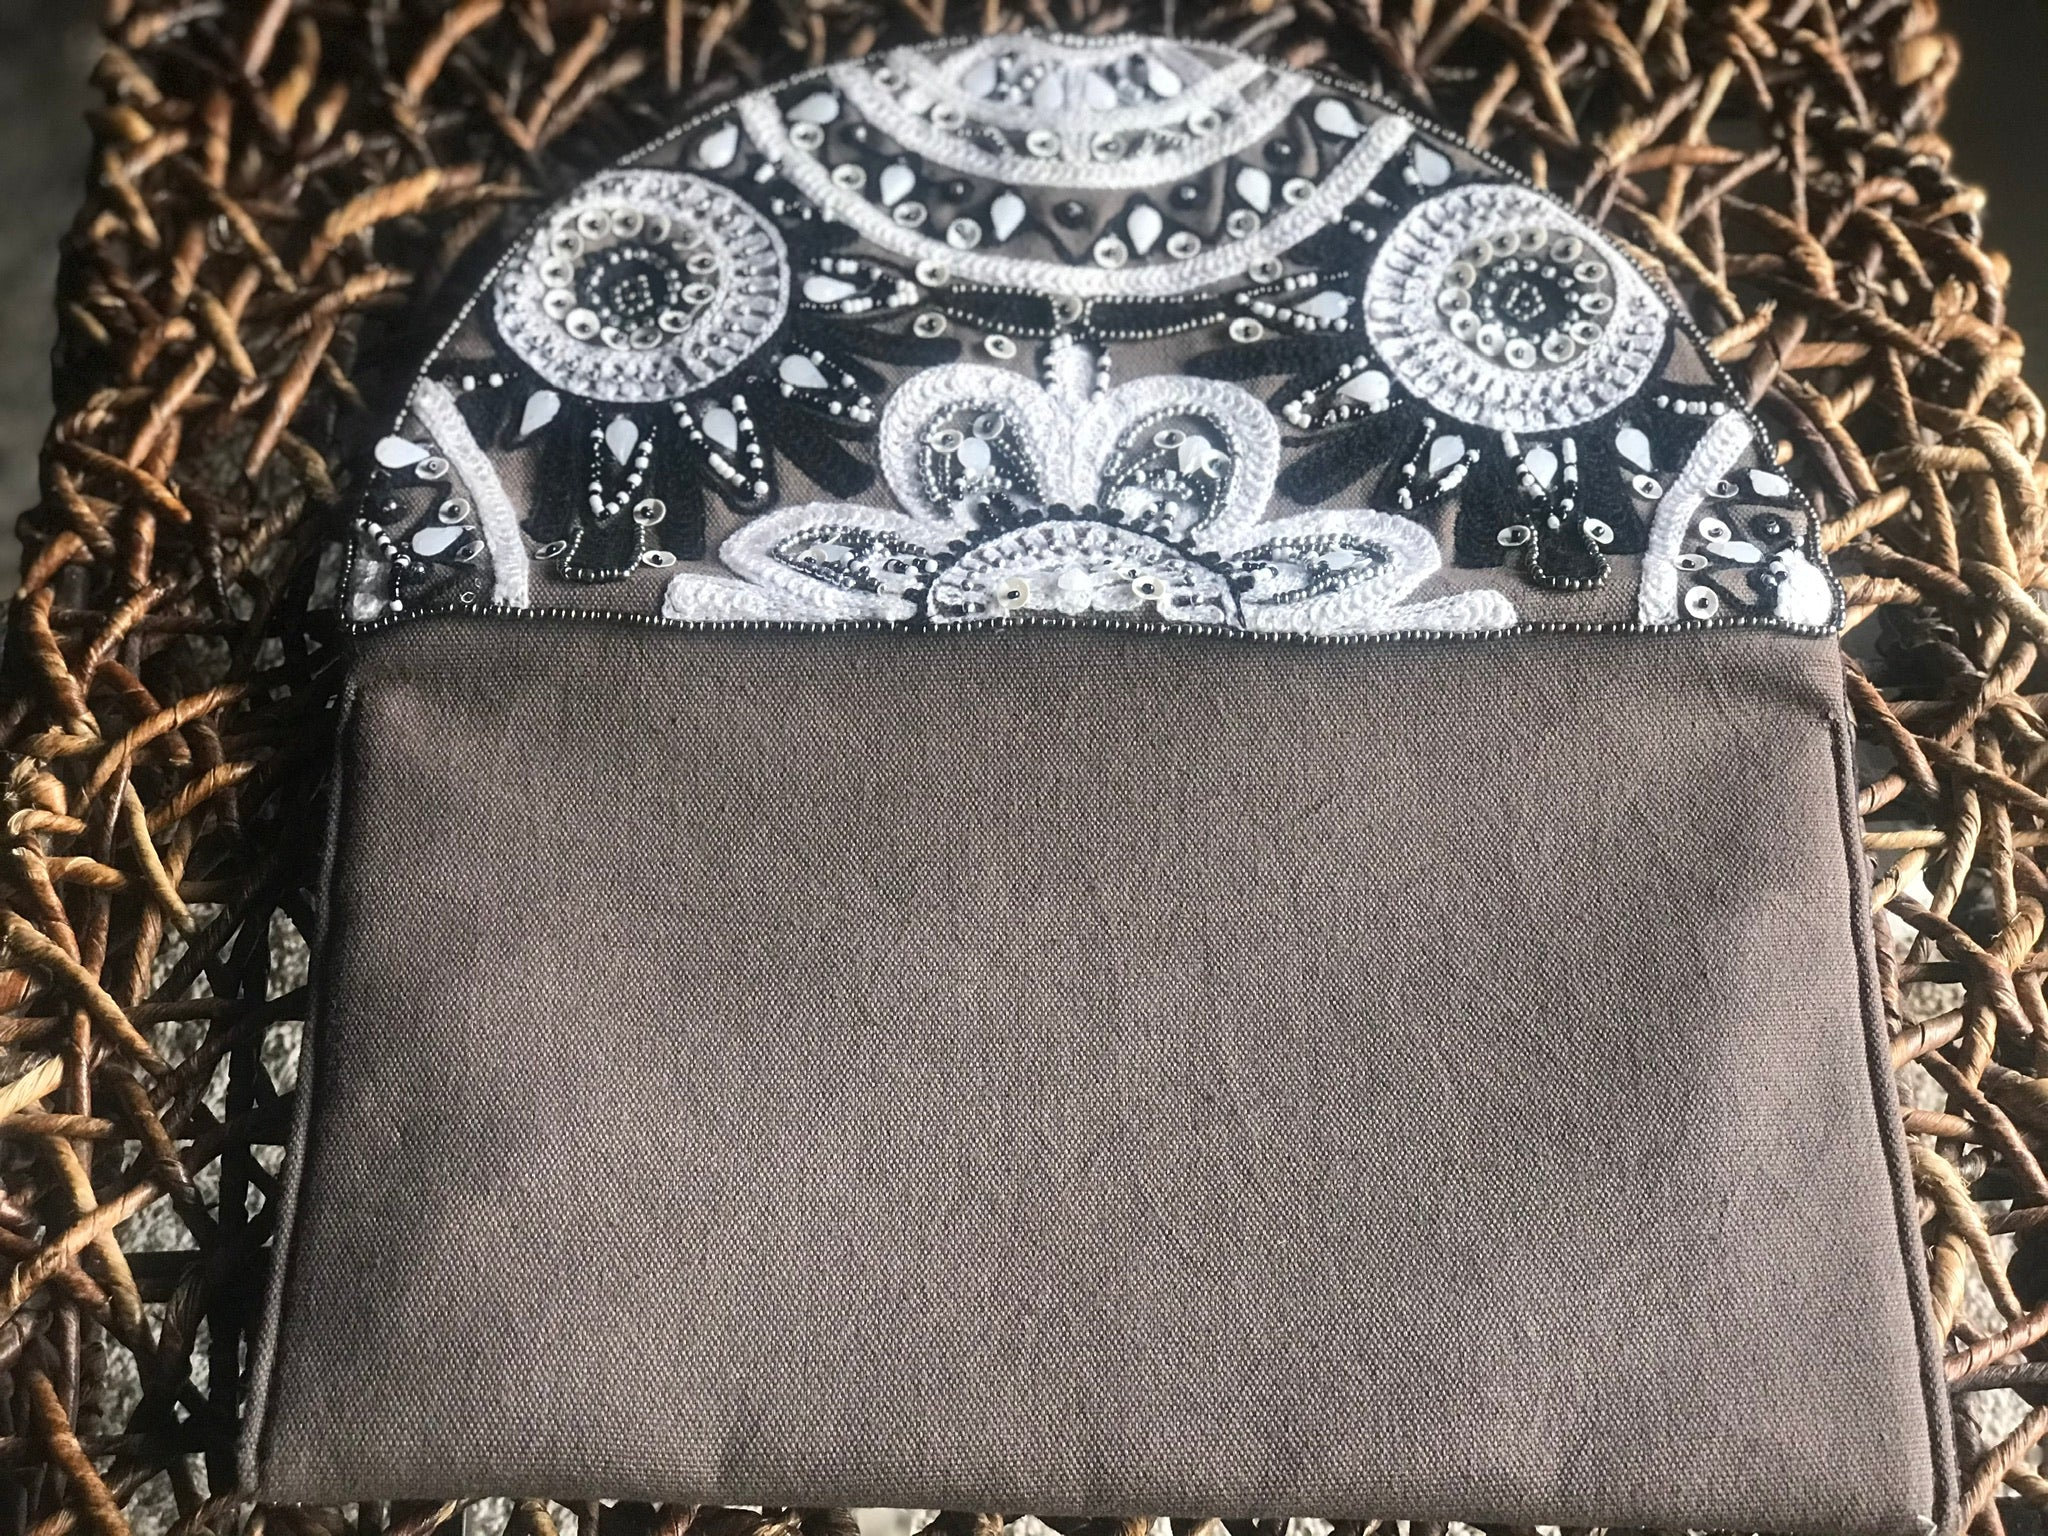 Clutch in Black and White (and Gray)